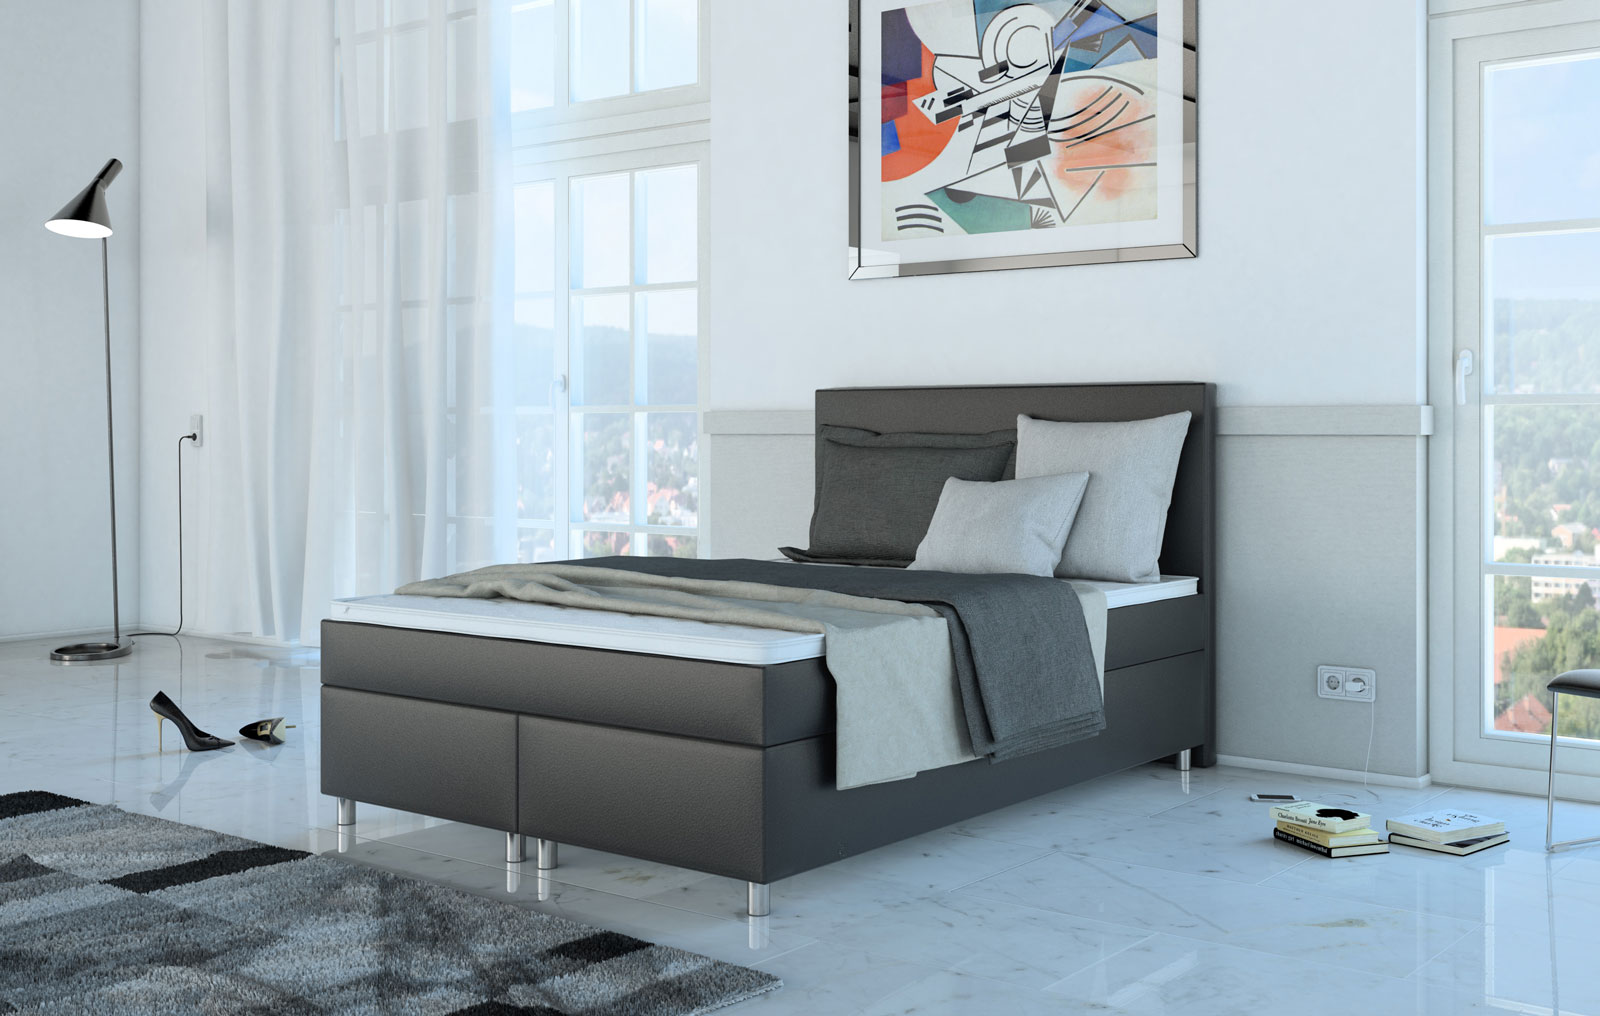 sam boxspringbett hotelbett 140 x 200 cm grau neo demn chst. Black Bedroom Furniture Sets. Home Design Ideas